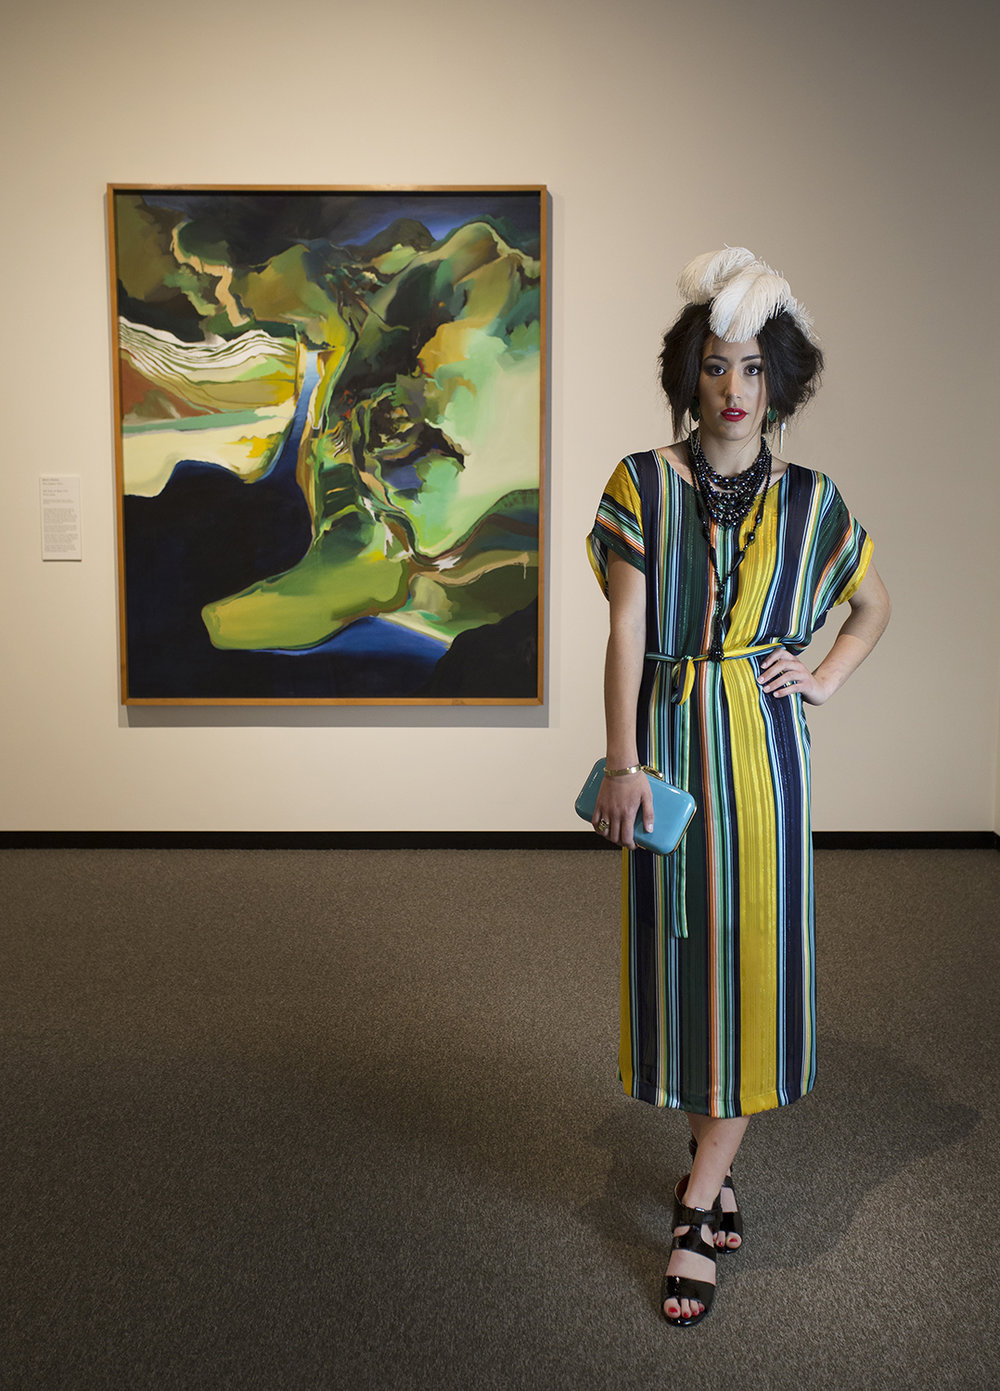 Dress, clutch and earrings from Shine. Vintage beads and plumes from Eclectic. Shoes from Tango's.  Artwork by Brain Strong (New Zealand, 1945-), Lake Series 10, Rotoiti, 1974, oil on canvas. Collection of The Suter Art Gallery Te Aratoi o Whakatu.